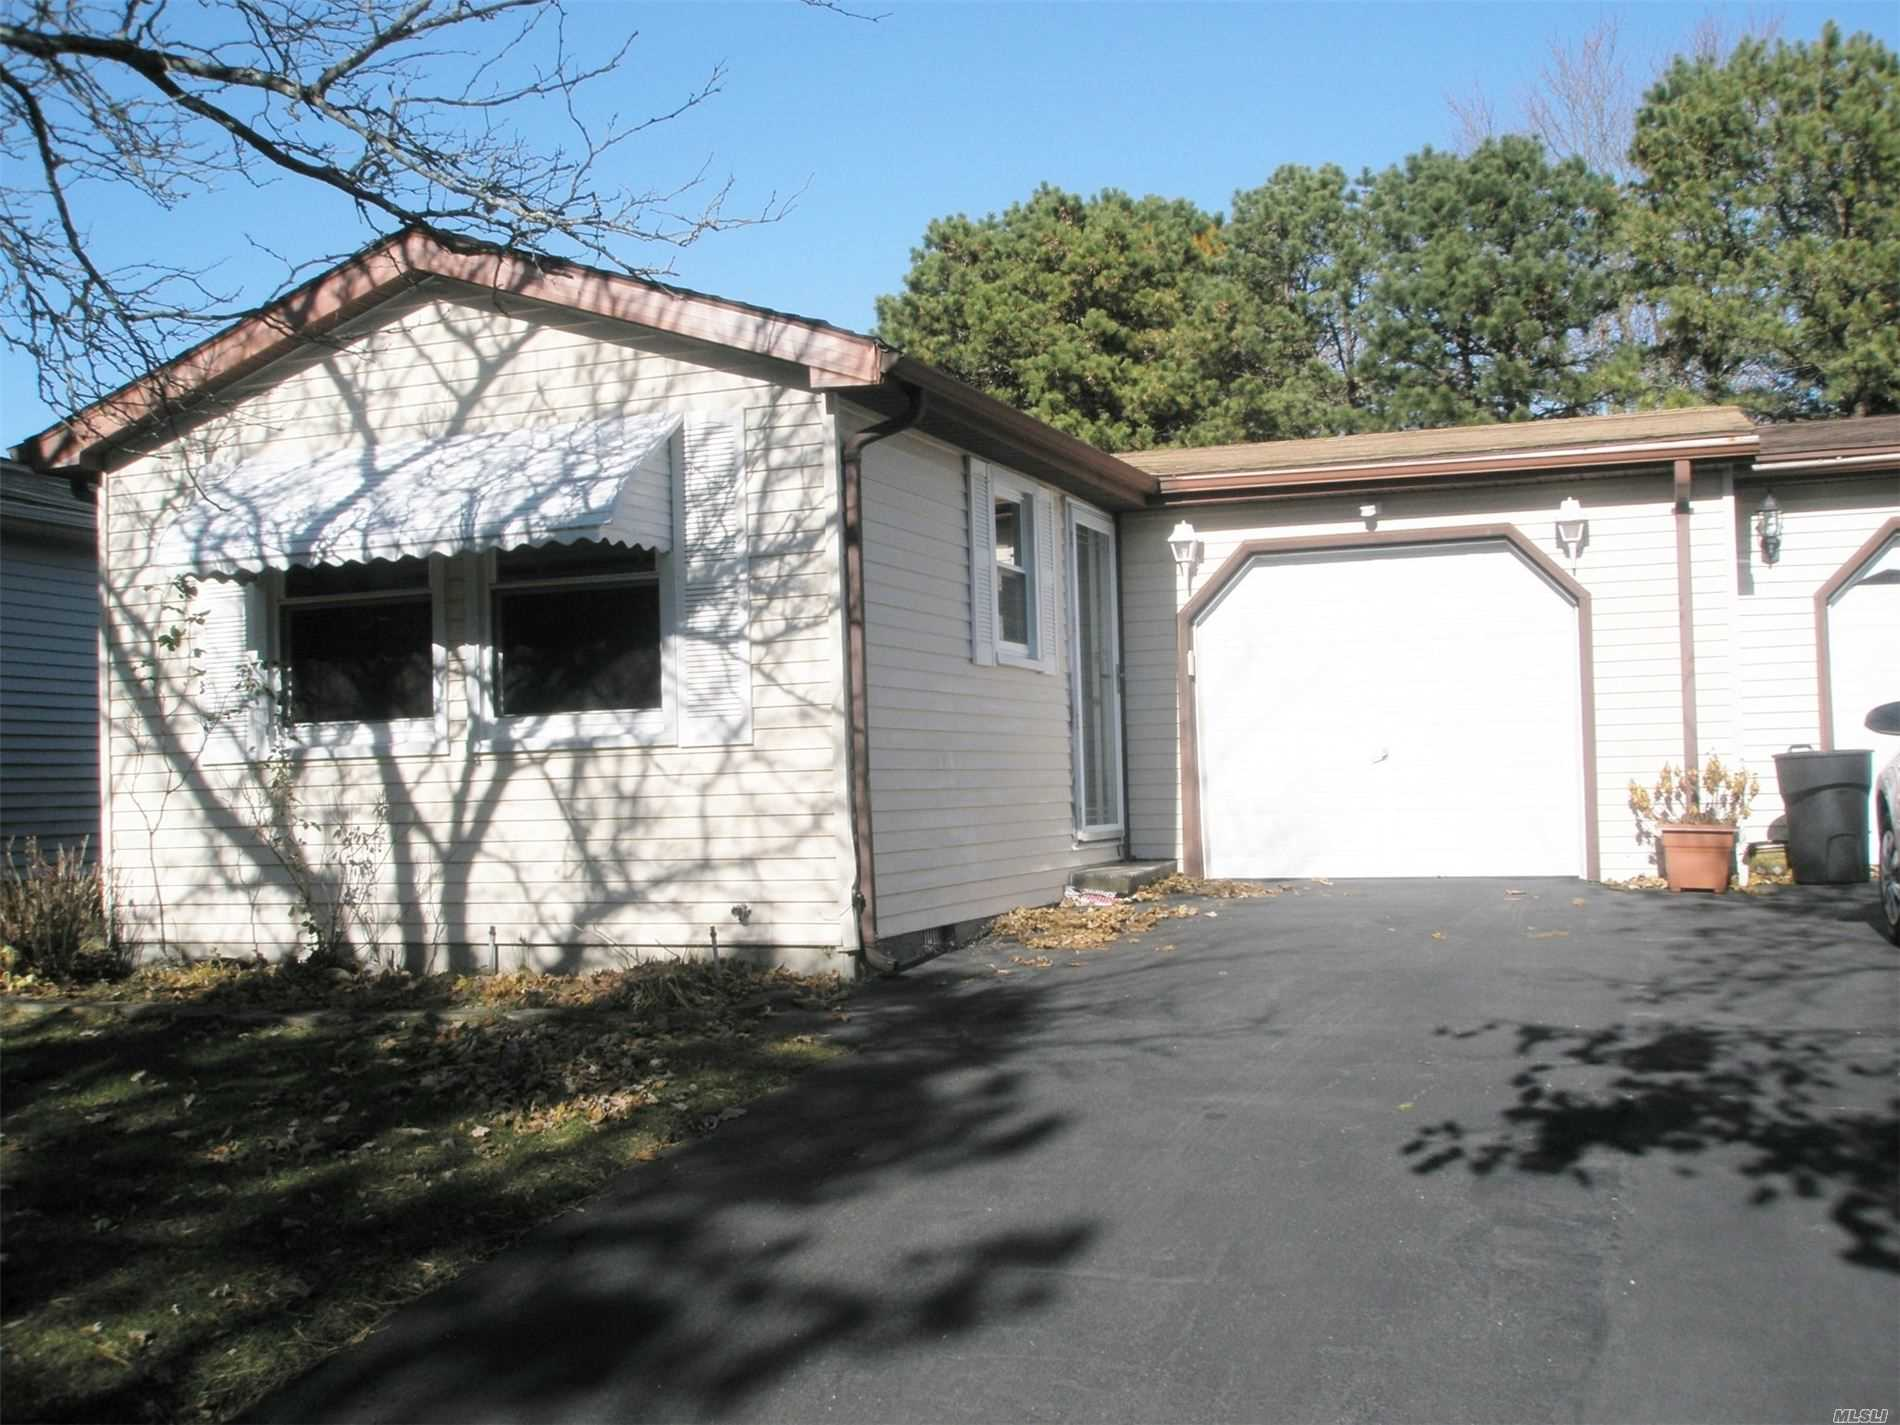 Property for sale at 46 Greenwood Blvd, Manorville NY 11949, Manorville,  New York 11949